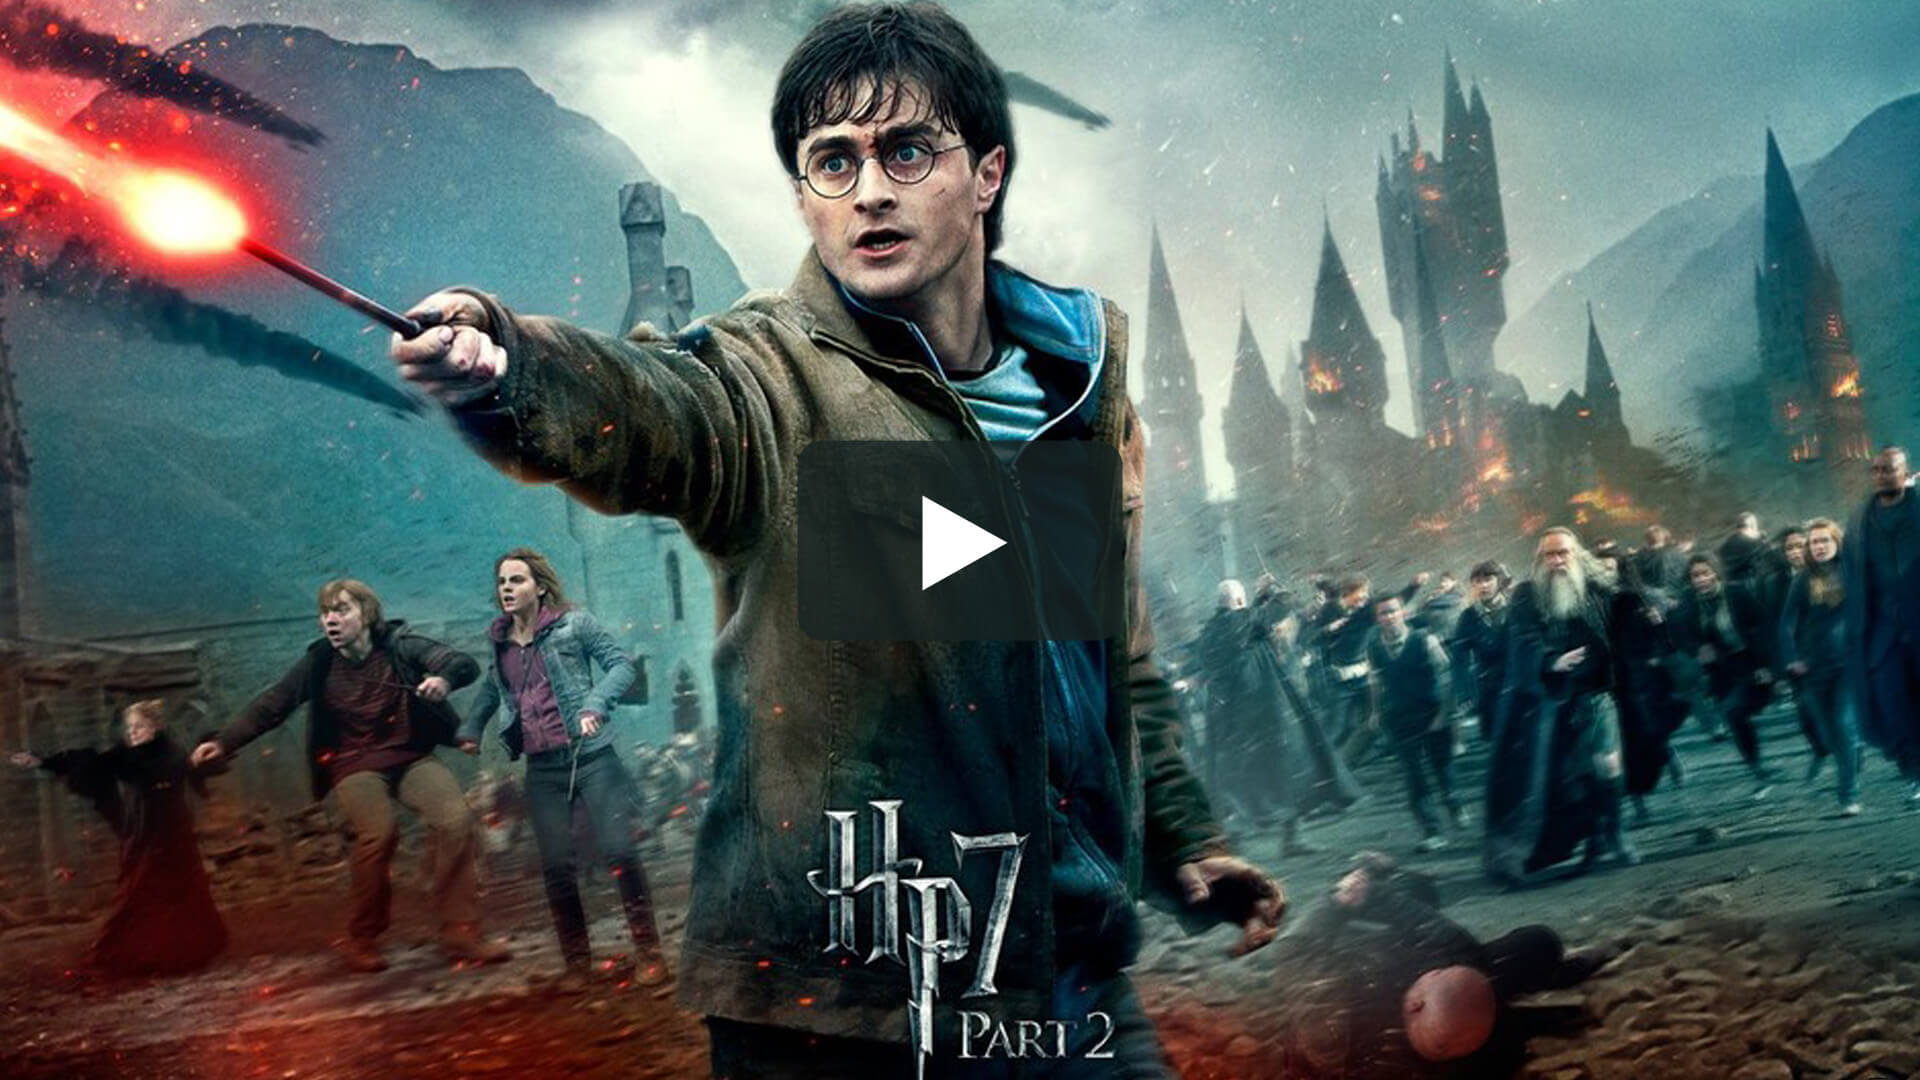 Harry Potter and the Deathly Hallows: Part 2 - 哈利·波特與死亡聖器(下)